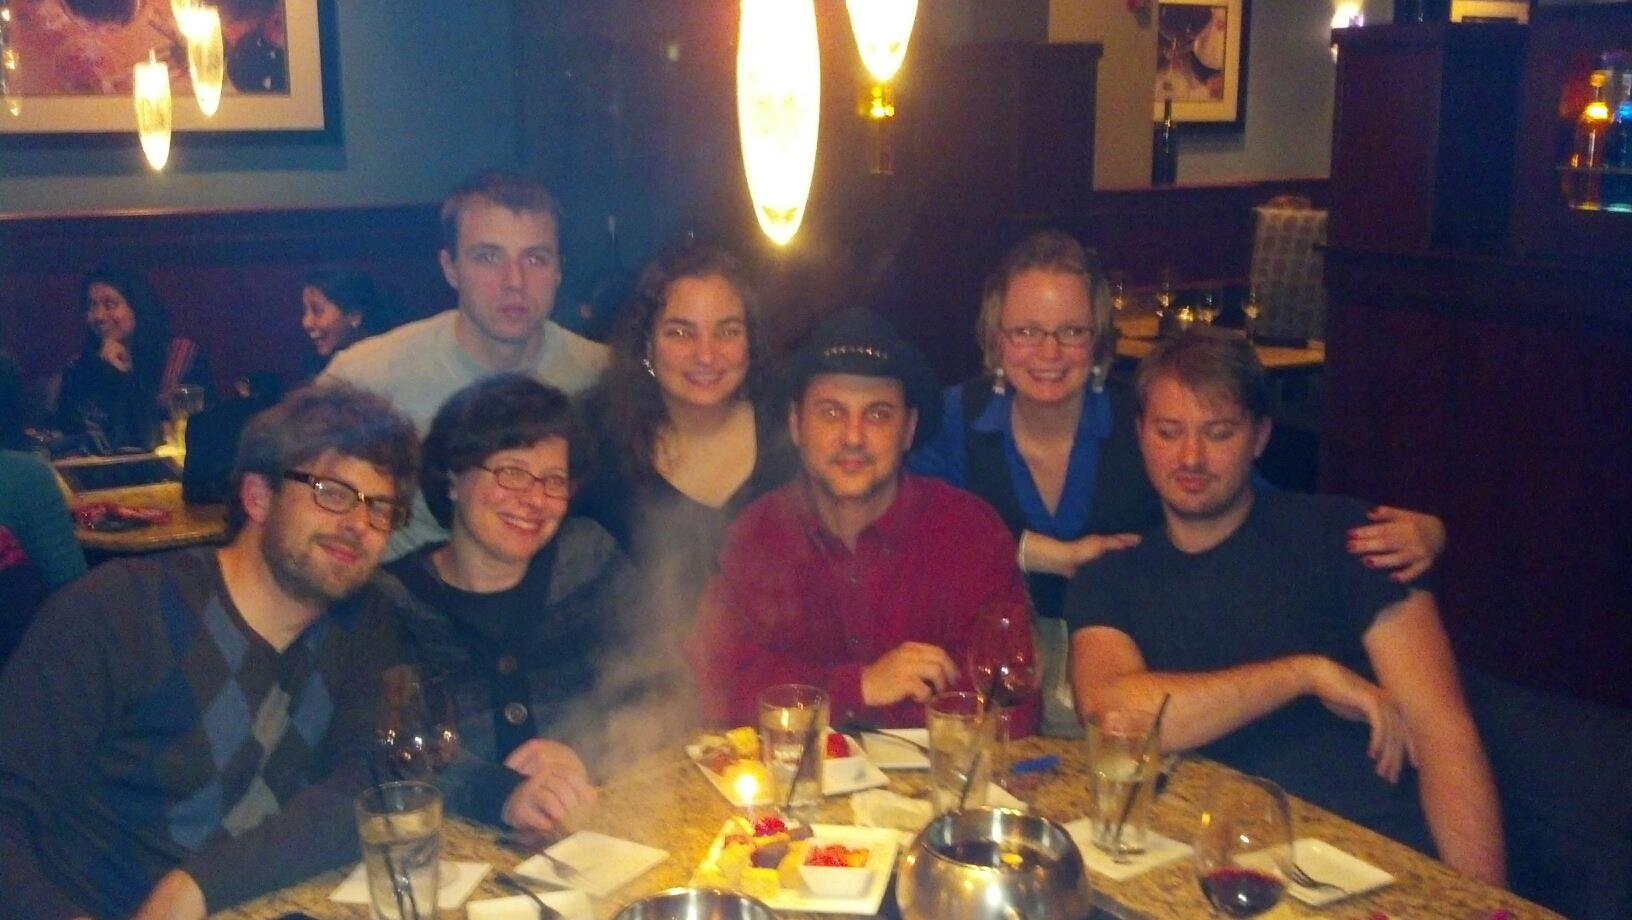 Thursday night at the Melting Pot celebrating Kristen's birthday with friends!